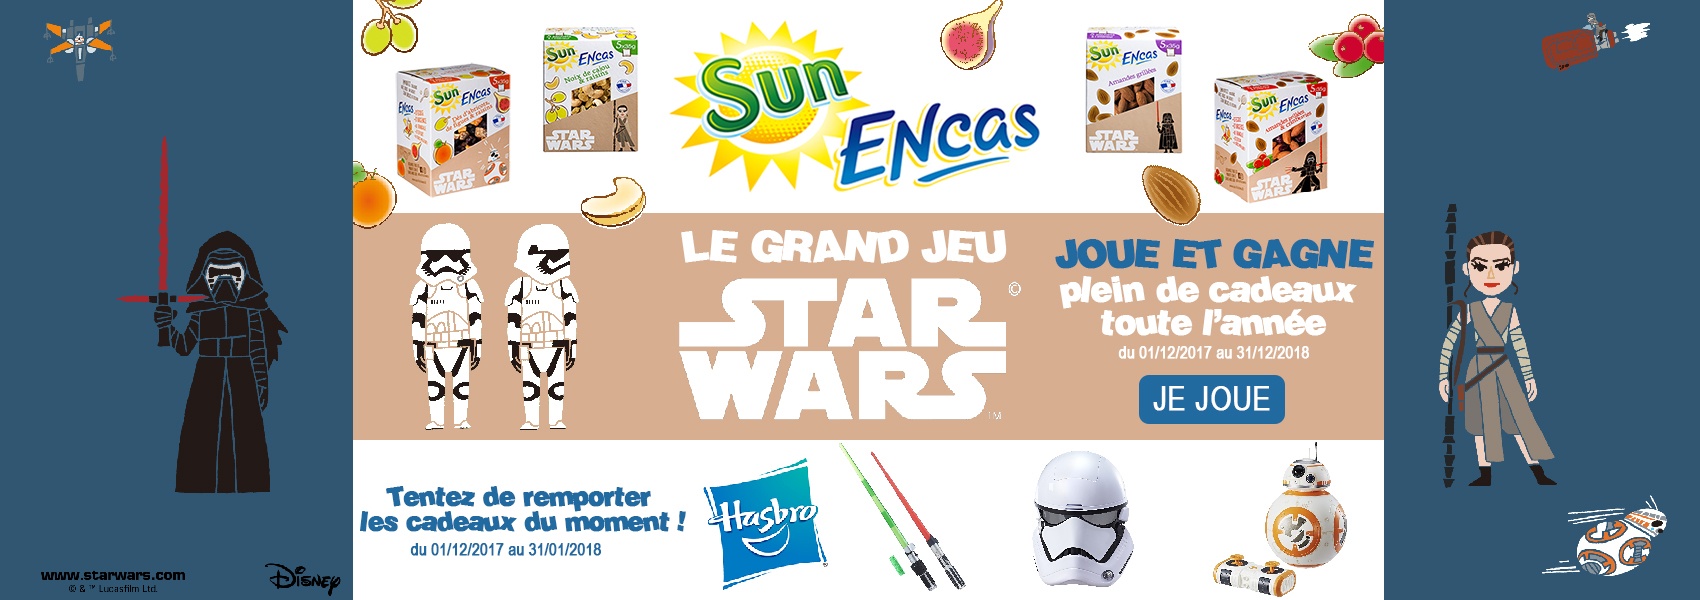 slider jeu encas star wars